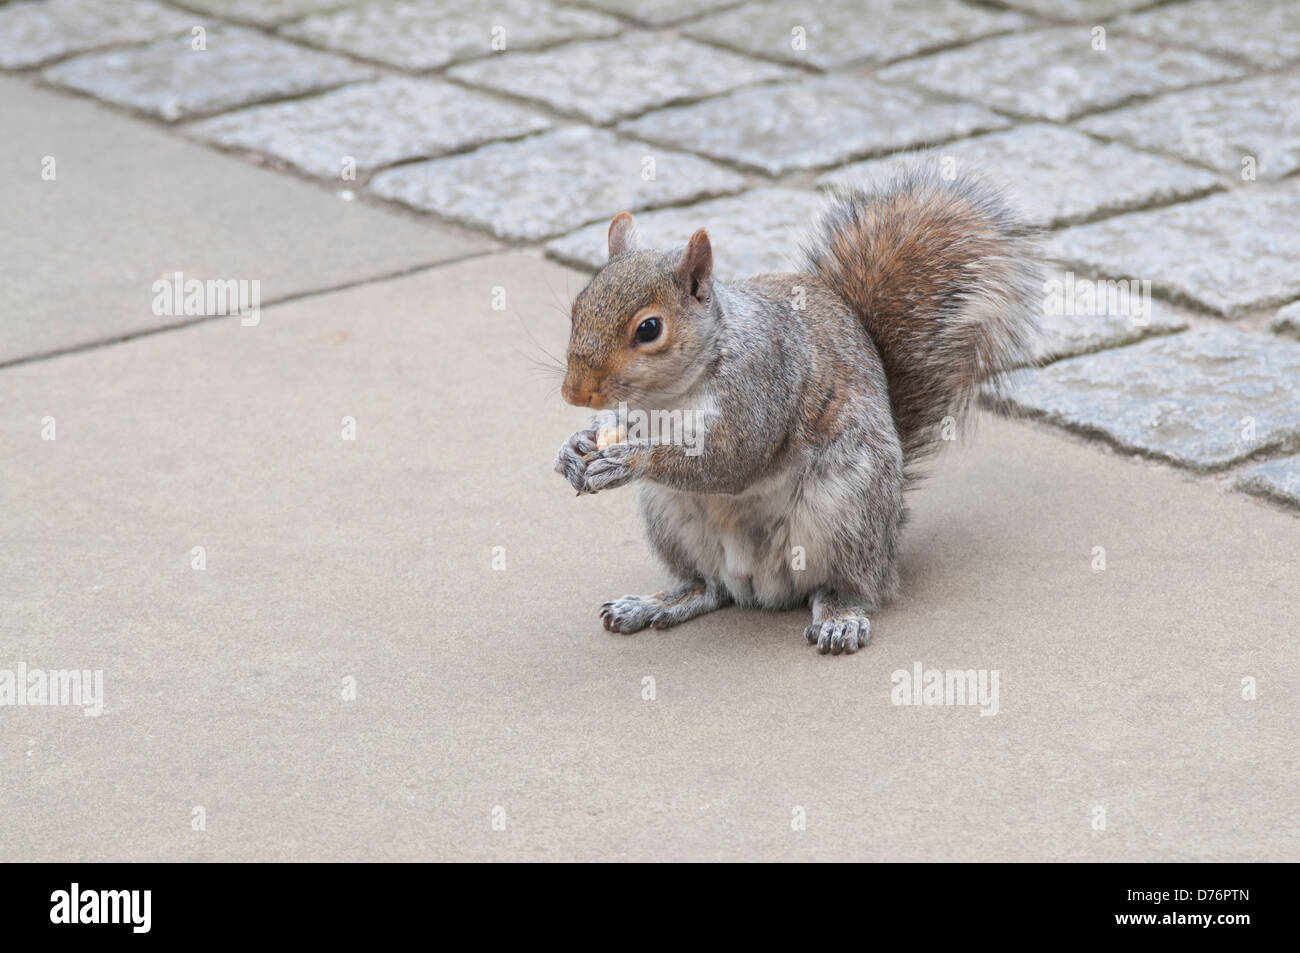 Tame Grey squirrel eating a biscuit in city park - Stock Image